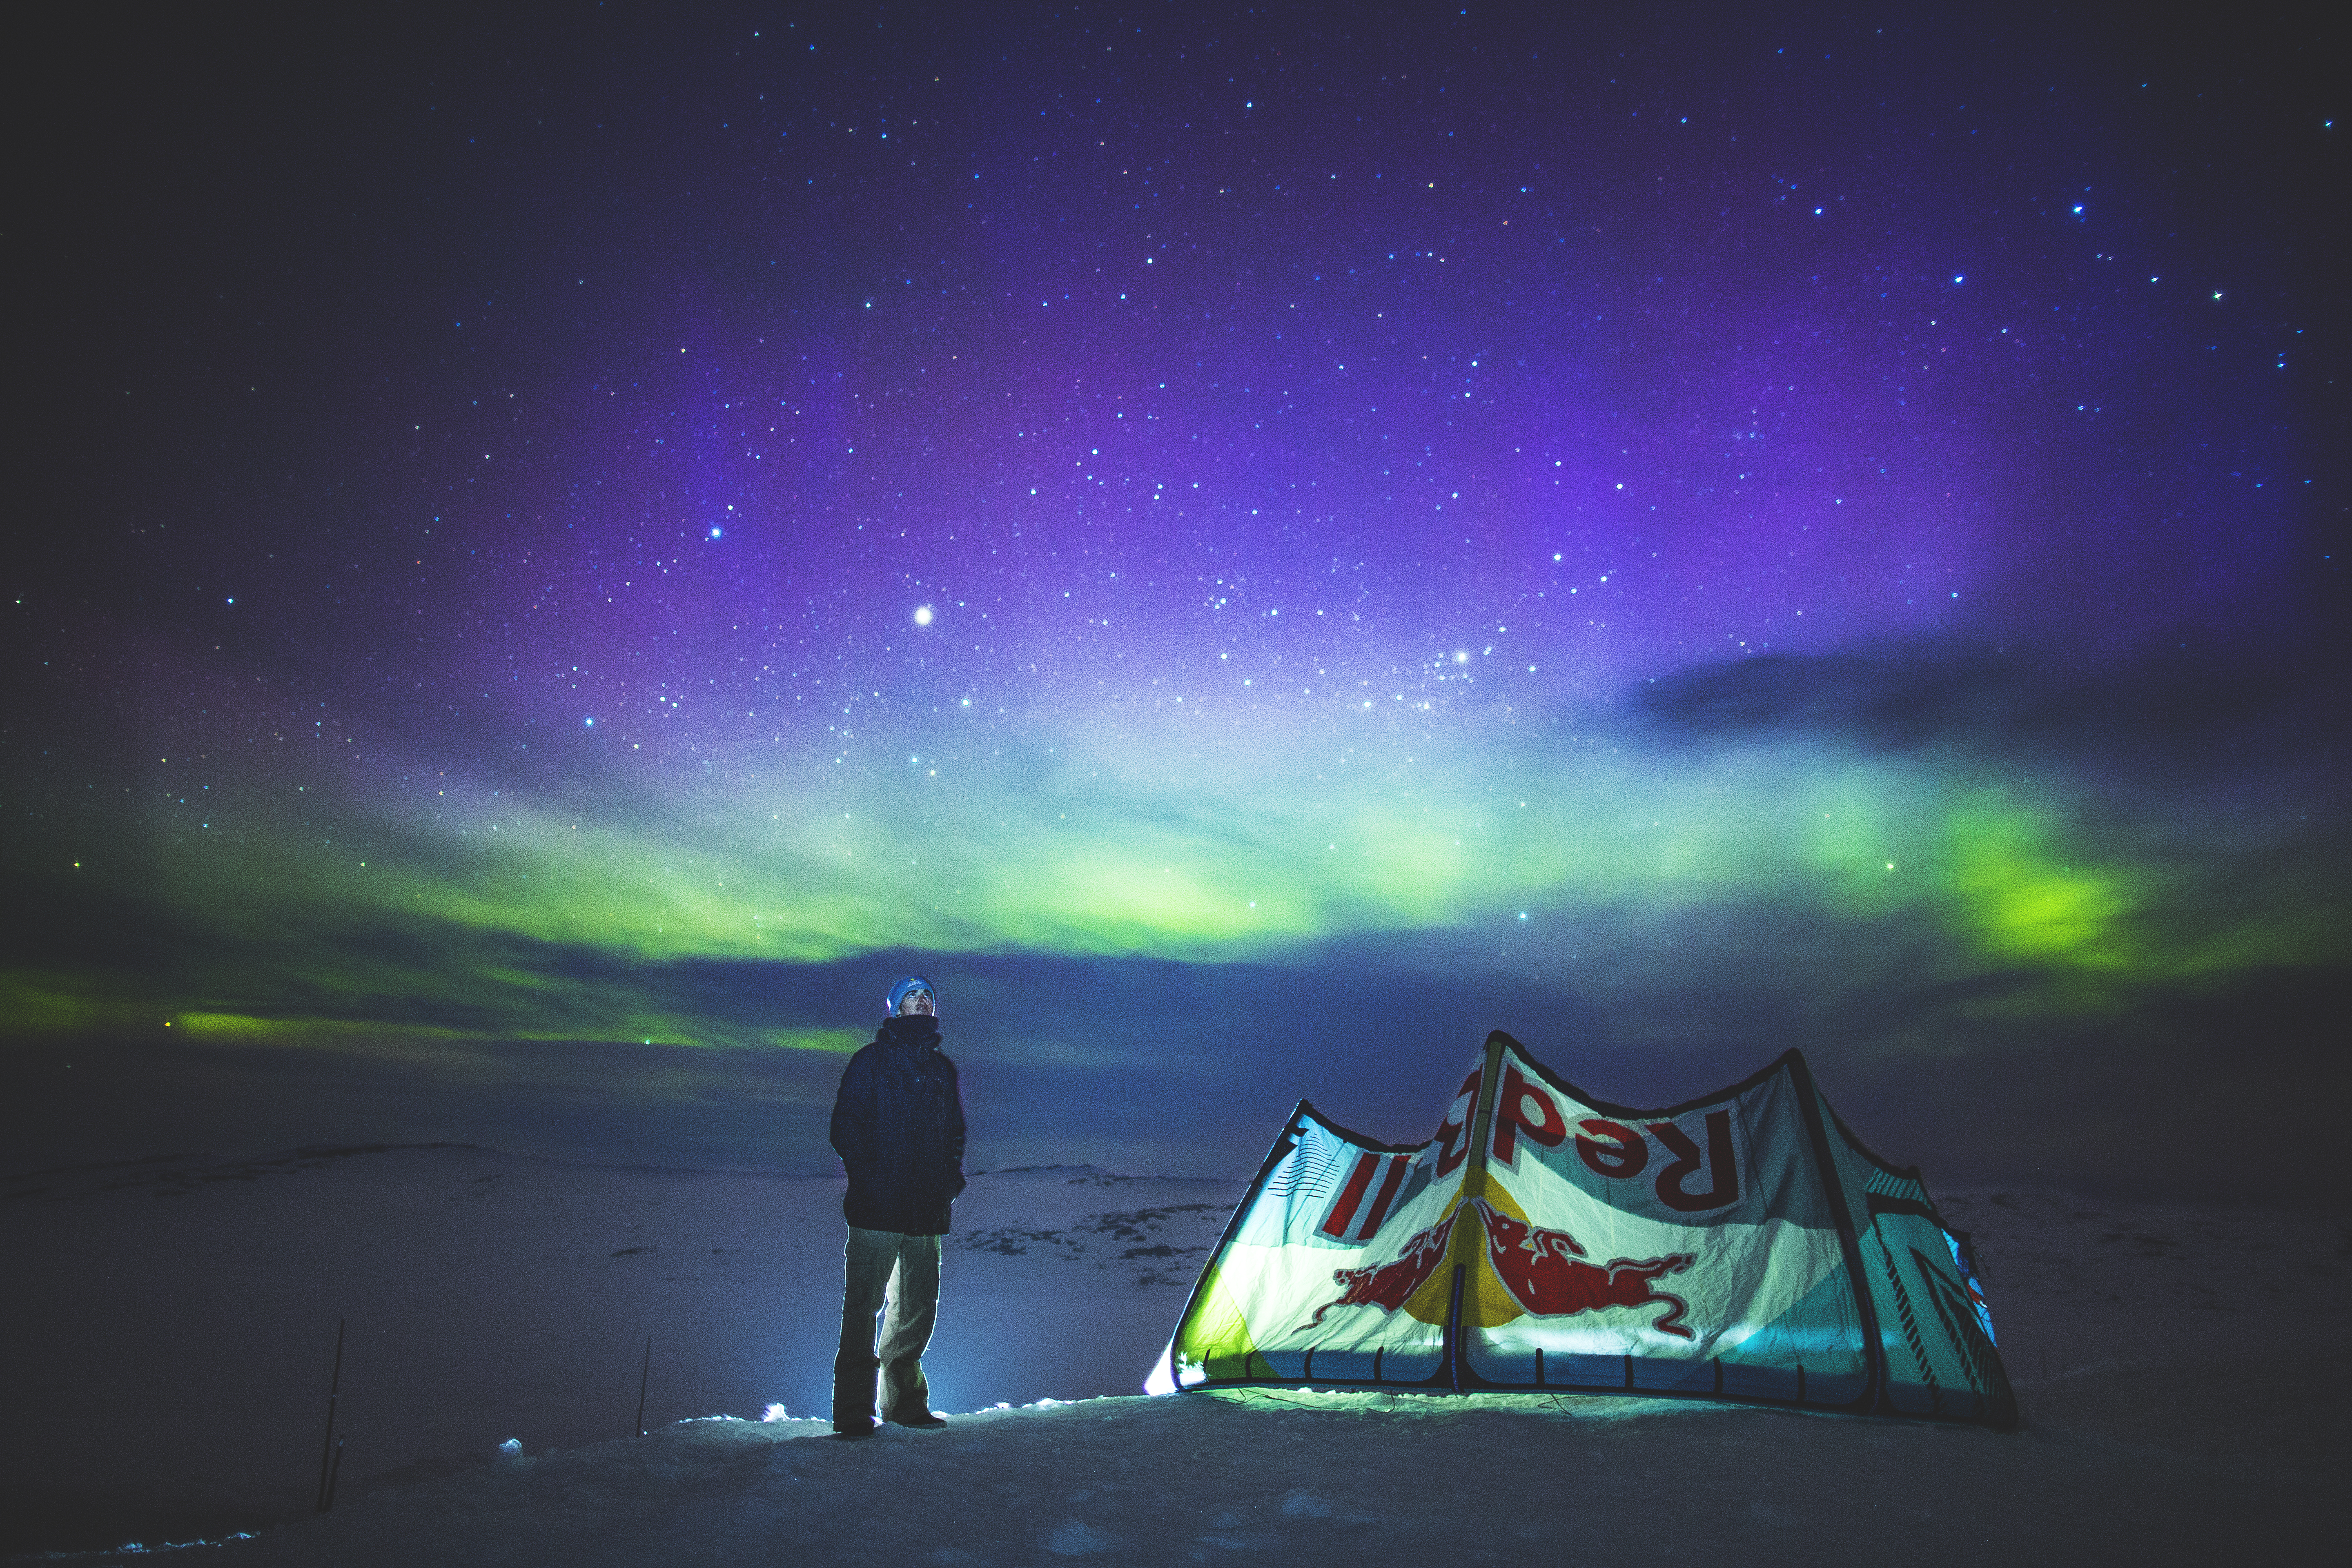 Christoph Tack watches the northern light during Red Bull Ragnarok at Hardangervidda in Haugastol , Norway on April 10, 2015. (Mats Grimsæth / Red Bull Content Pool)